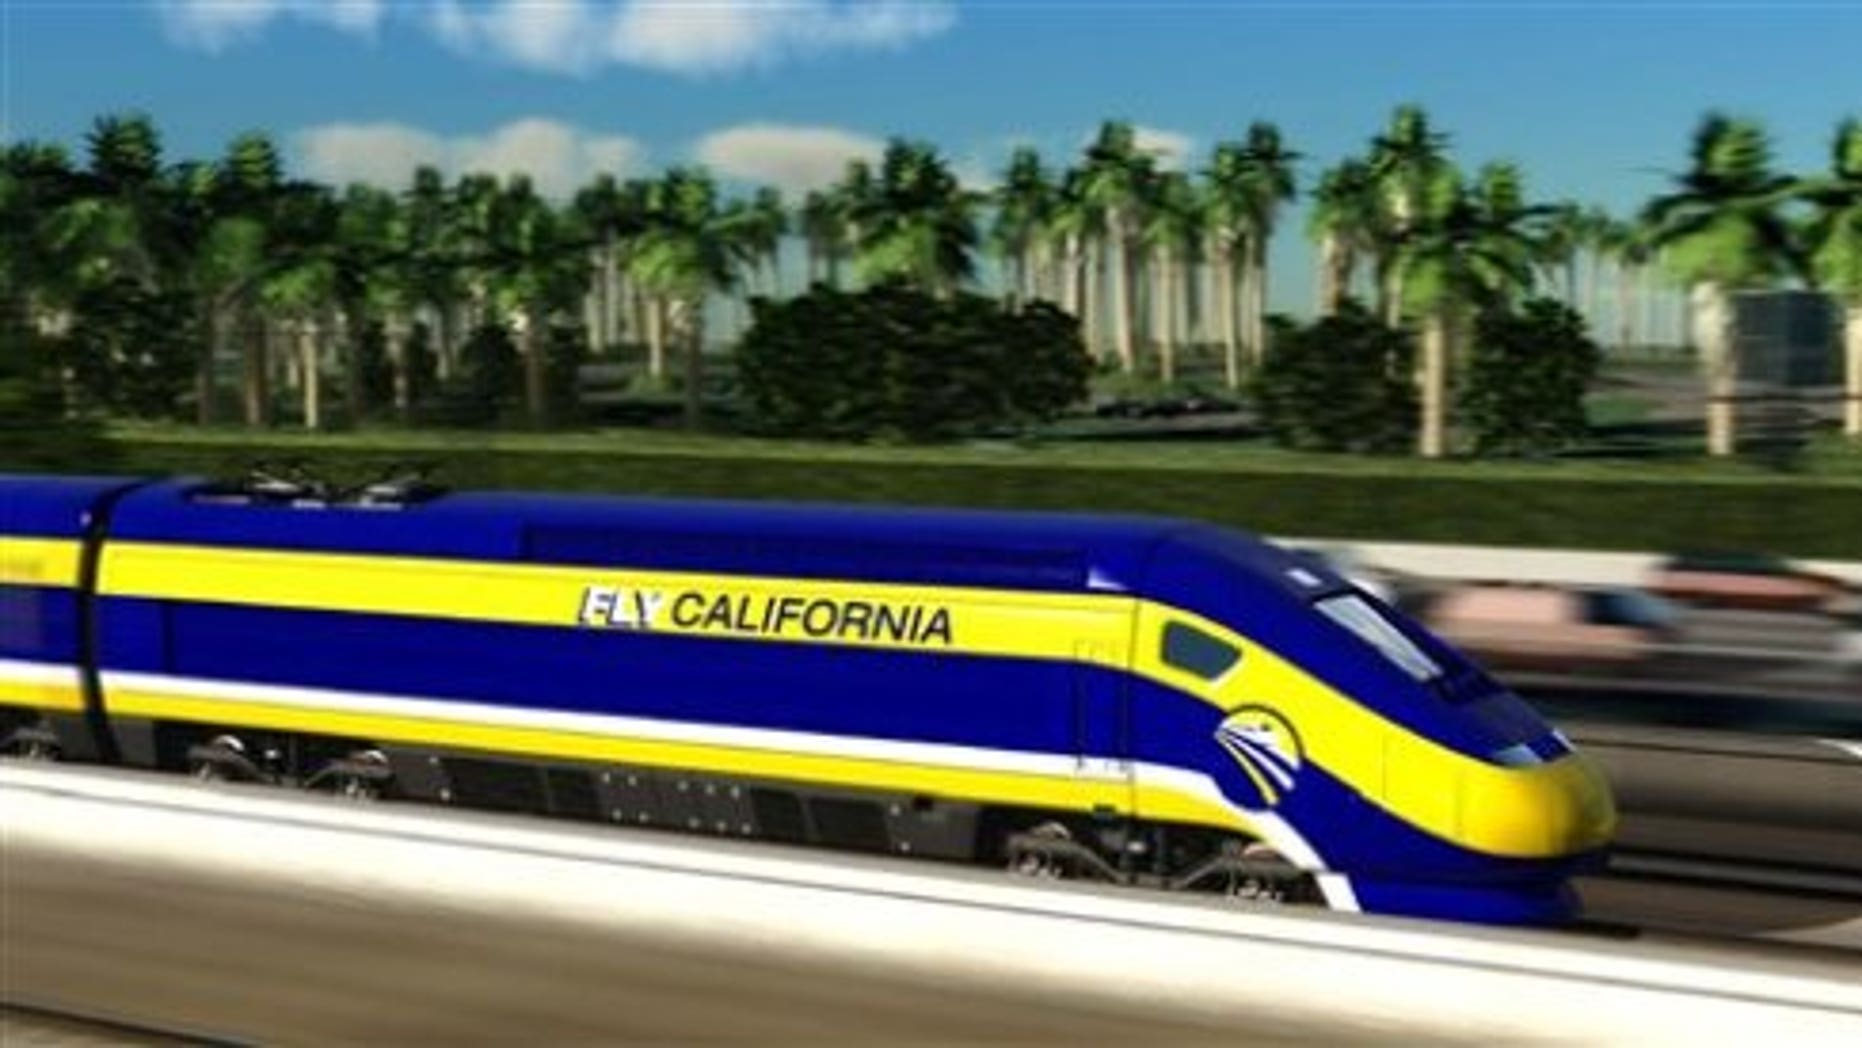 This image provided by the California High-Speed Rail Authority shows an artist's conception of a high-speed rail car in California. (AP Photo/California High-Speed Rail Authority)